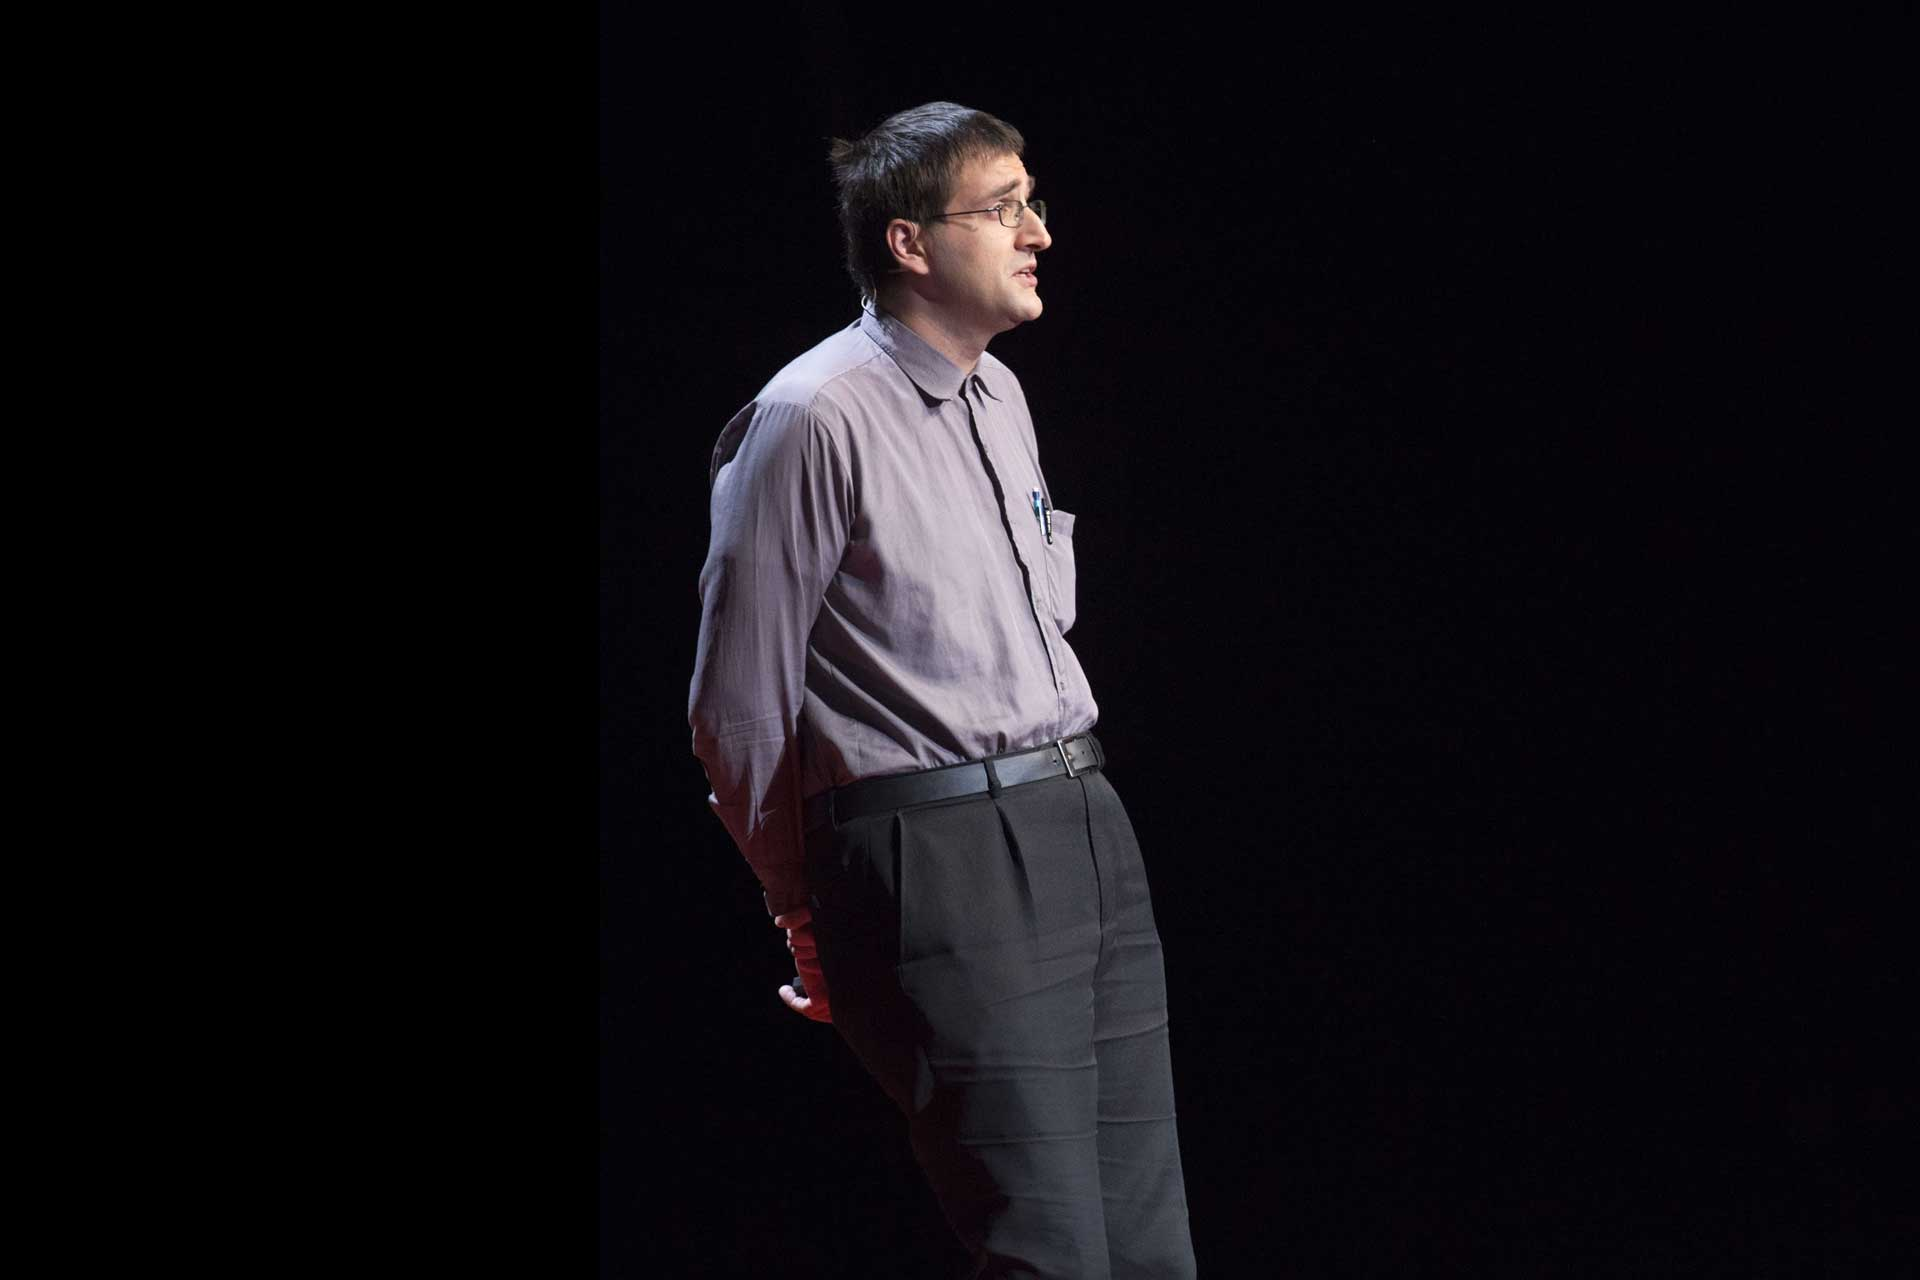 conference-TEDxParis-2014-15.jpg